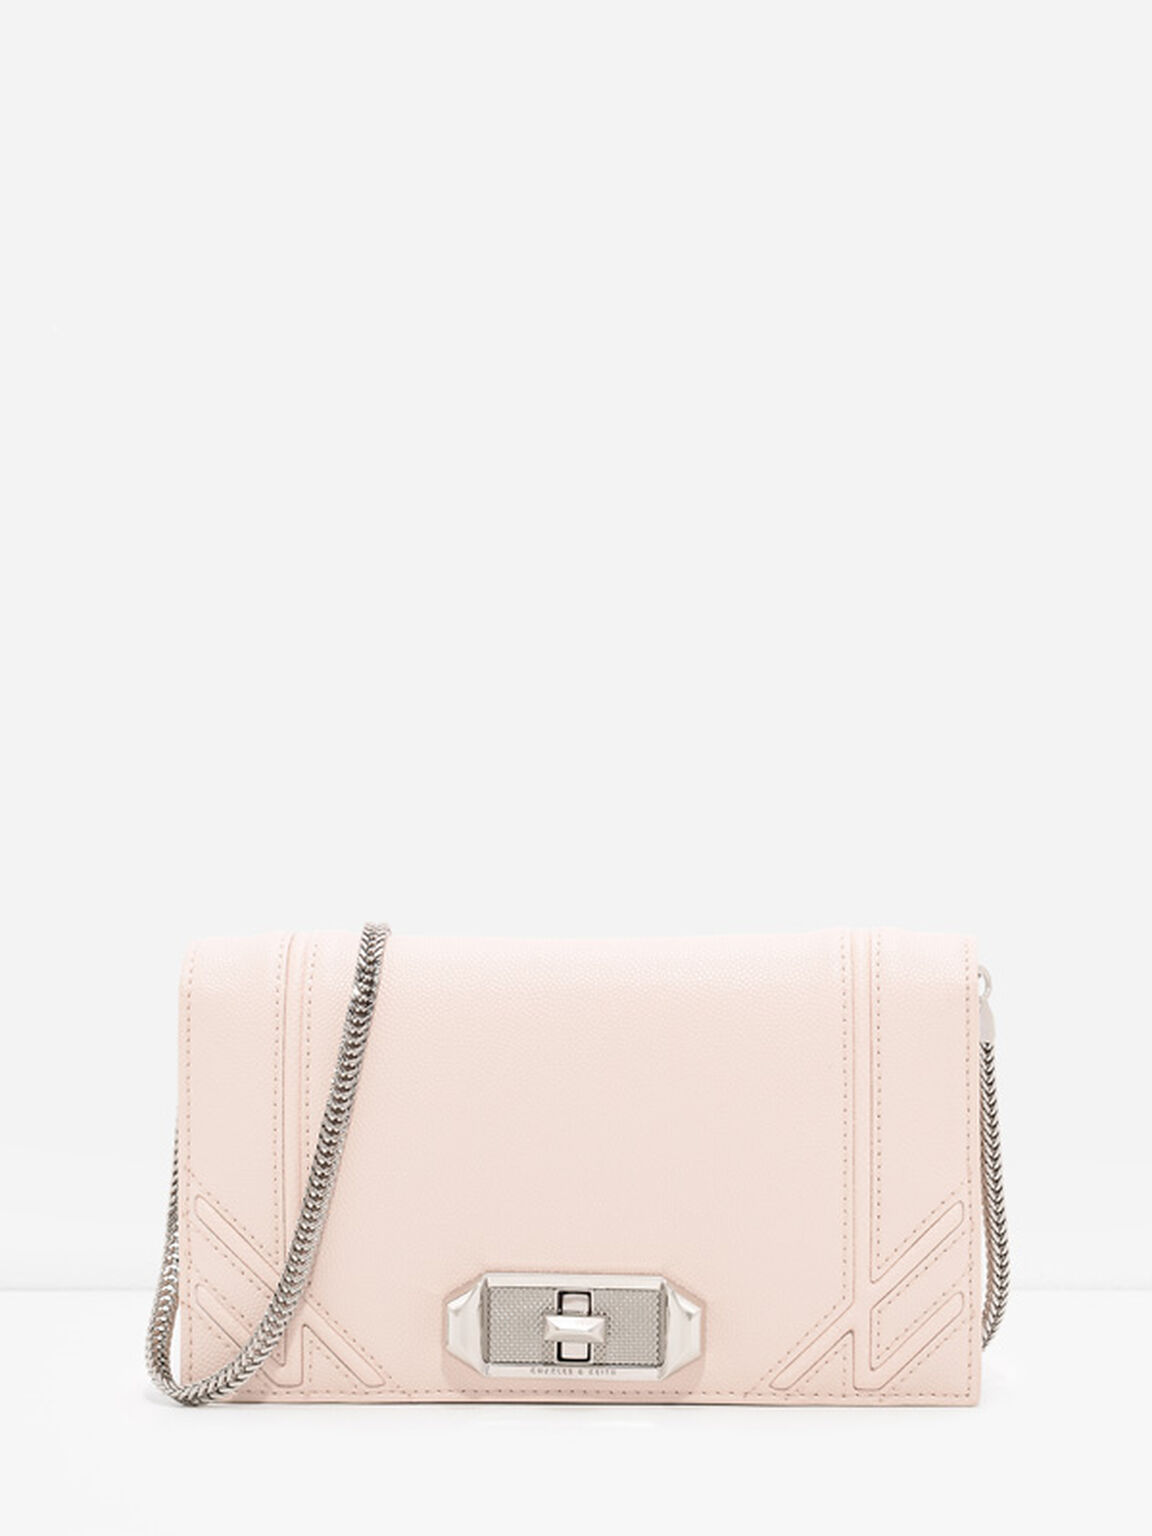 Turn-Lock Wallet, Light Pink, hi-res